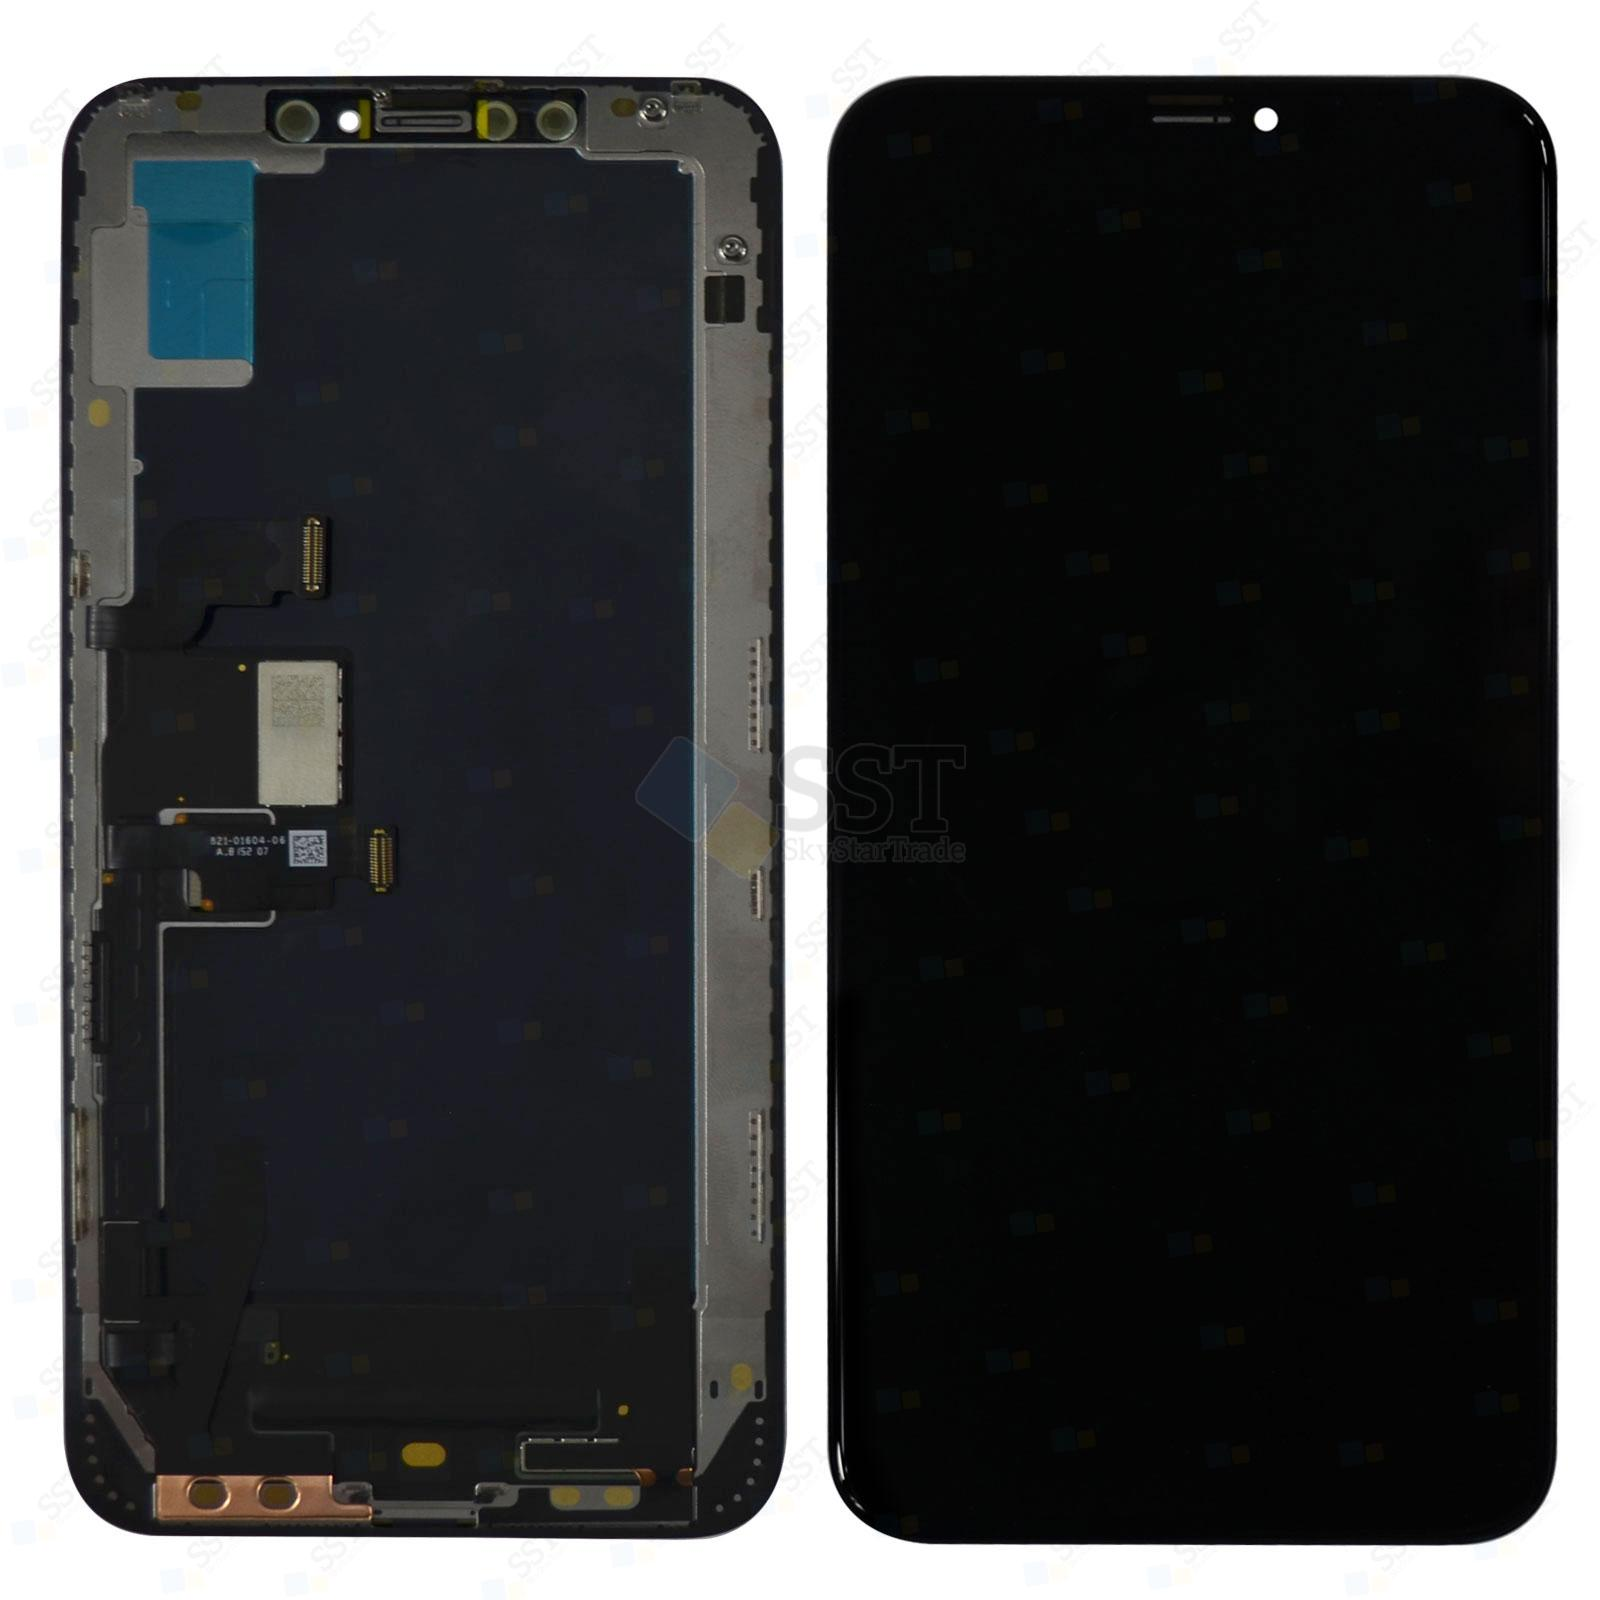 iPhone XS Max A1921 A2101 A2102 A2103 A2104 LCD Screen Digitizer, Black